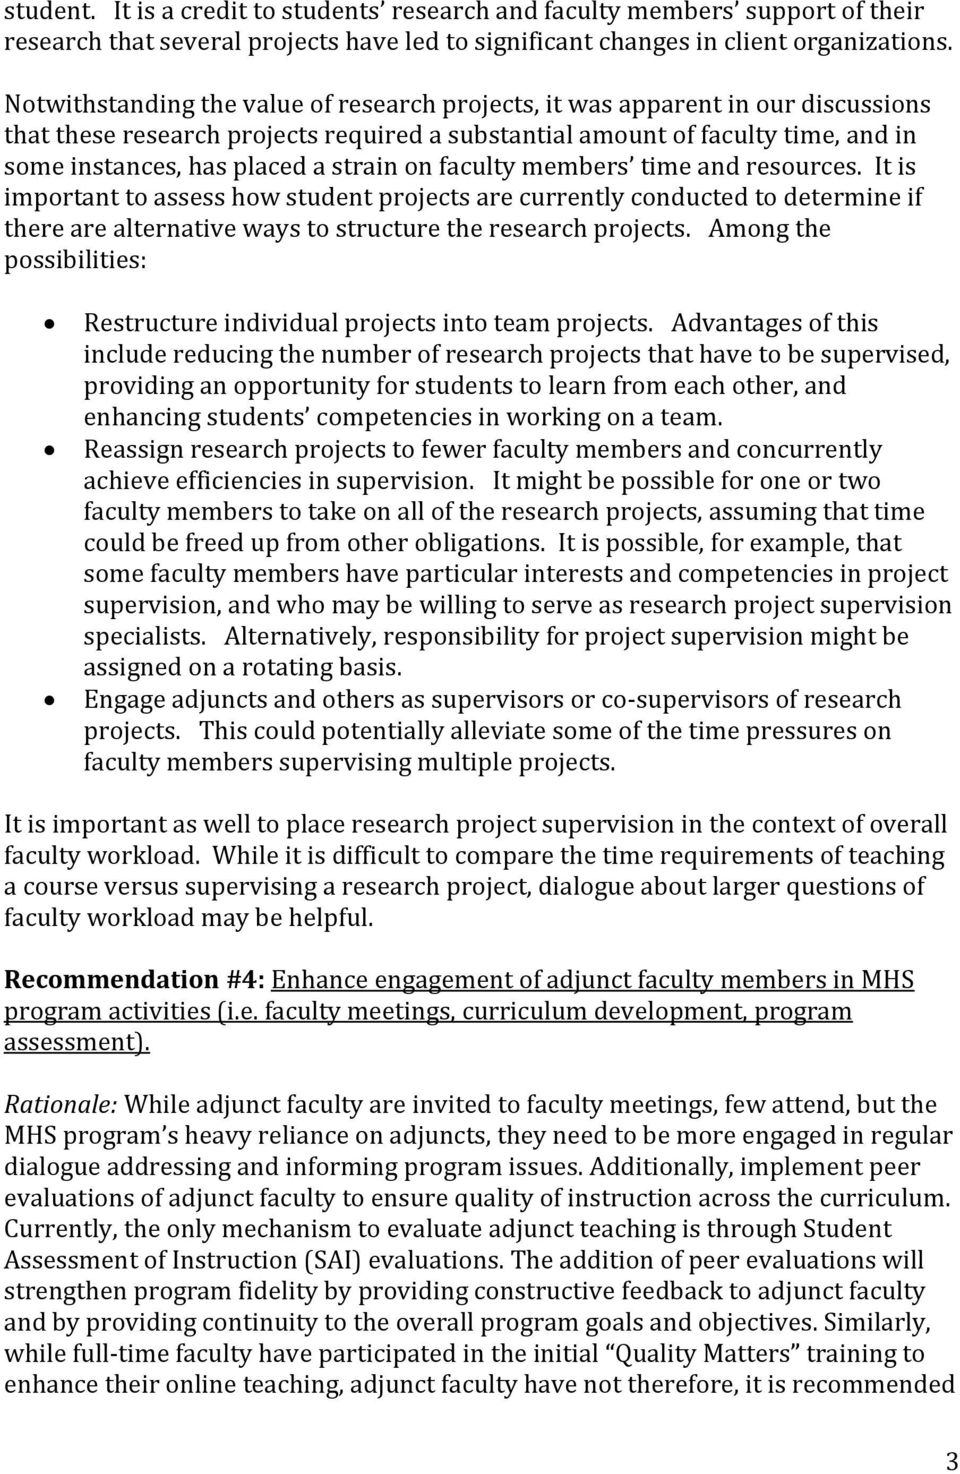 strain on faculty members time and resources. It is important to assess how student projects are currently conducted to determine if there are alternative ways to structure the research projects.